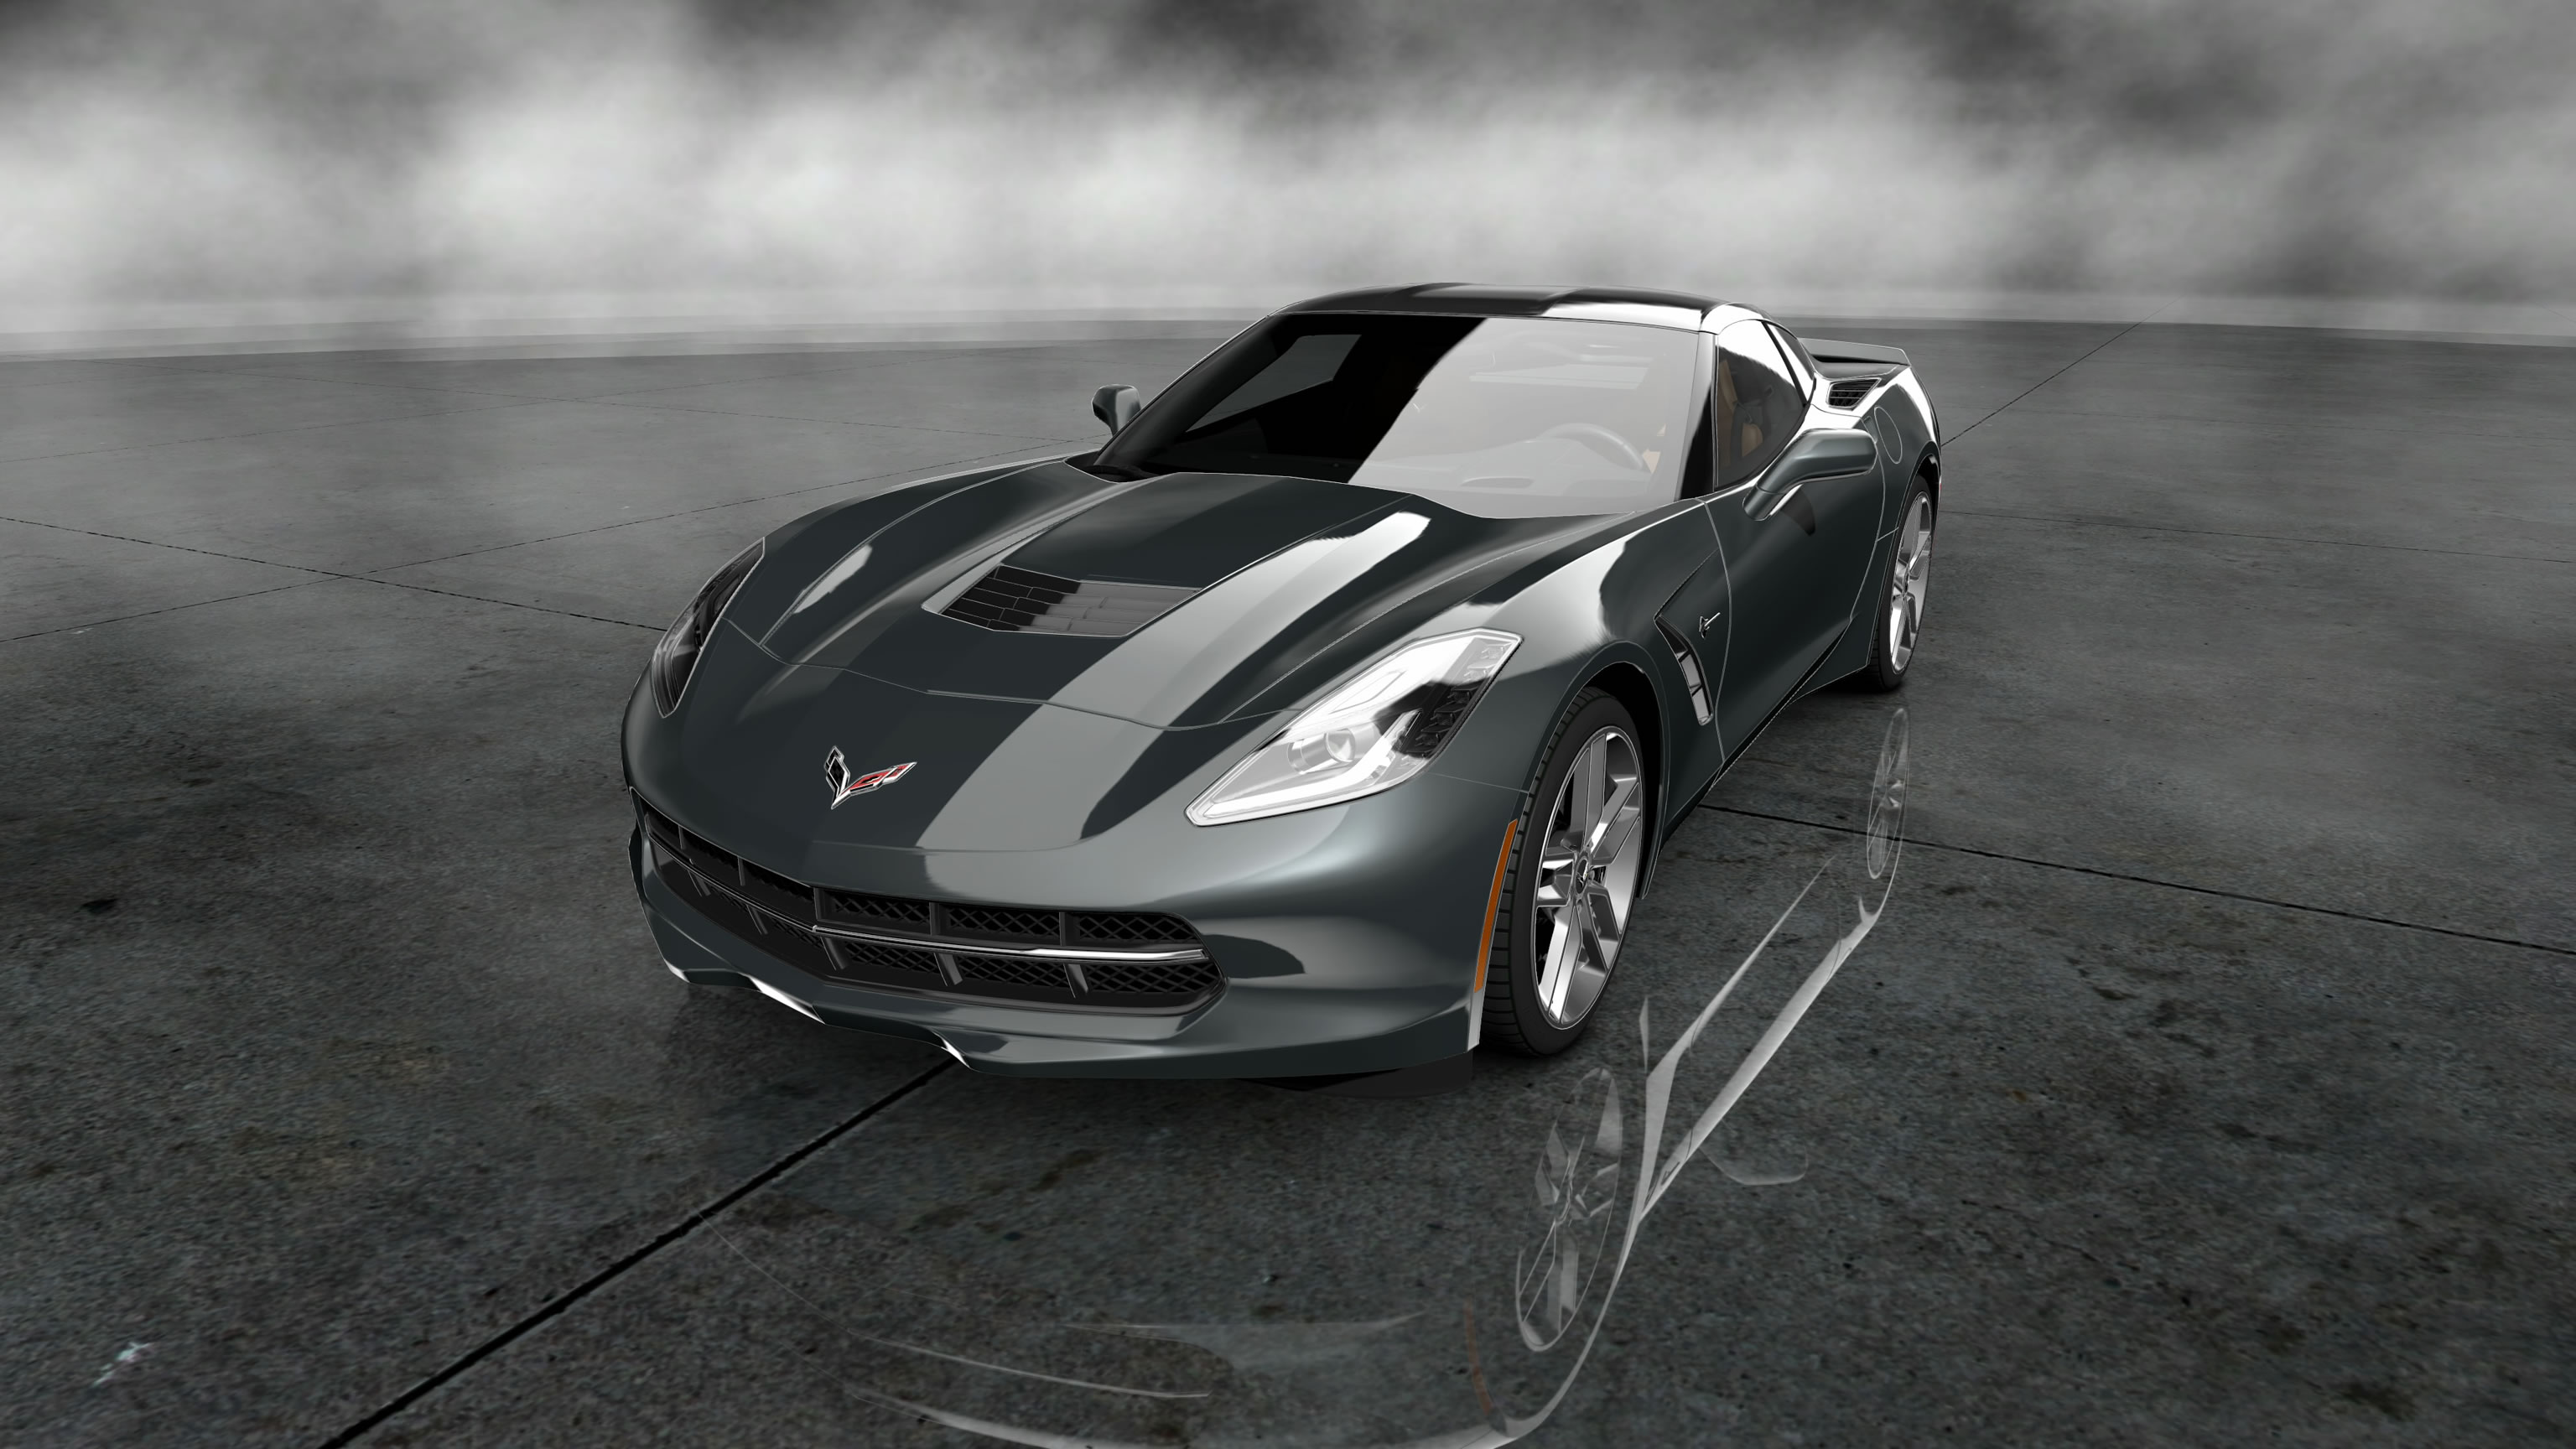 C7 CORVETTE  Cars Wallpaper & Picture